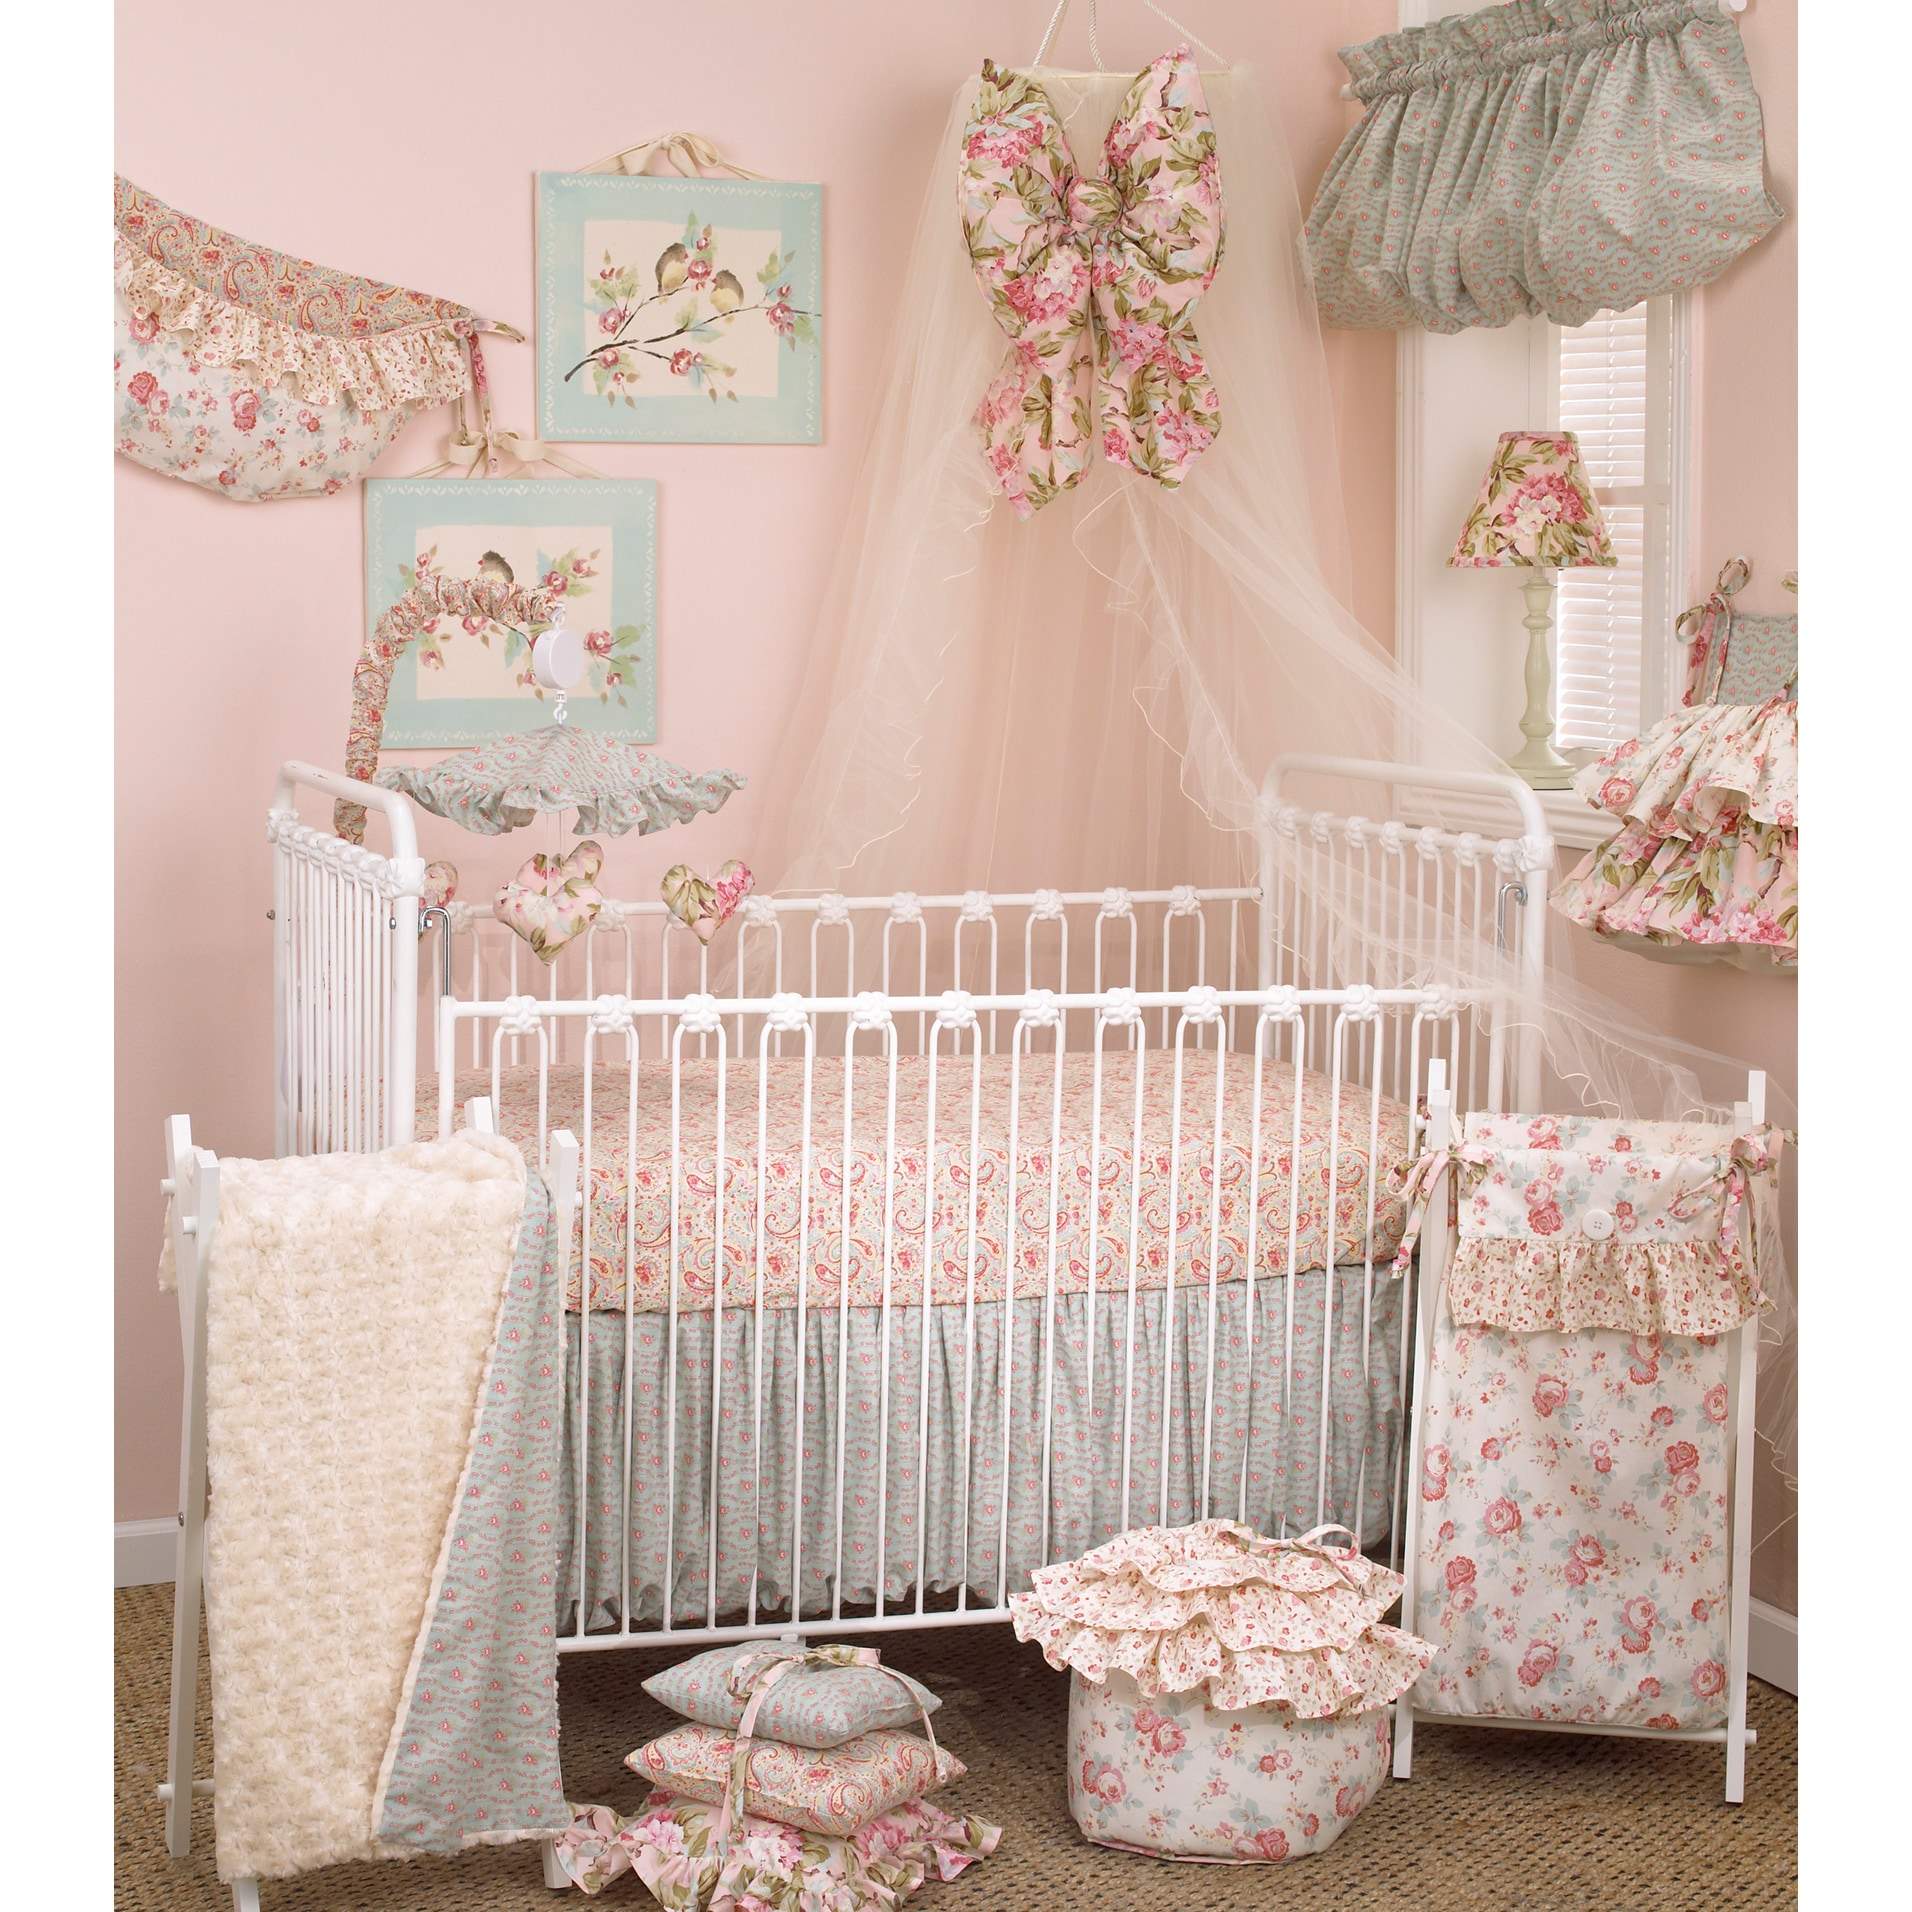 Full Crib Bedding Sets Floral Crib Bedding Set Tea Party 7 Piece Set